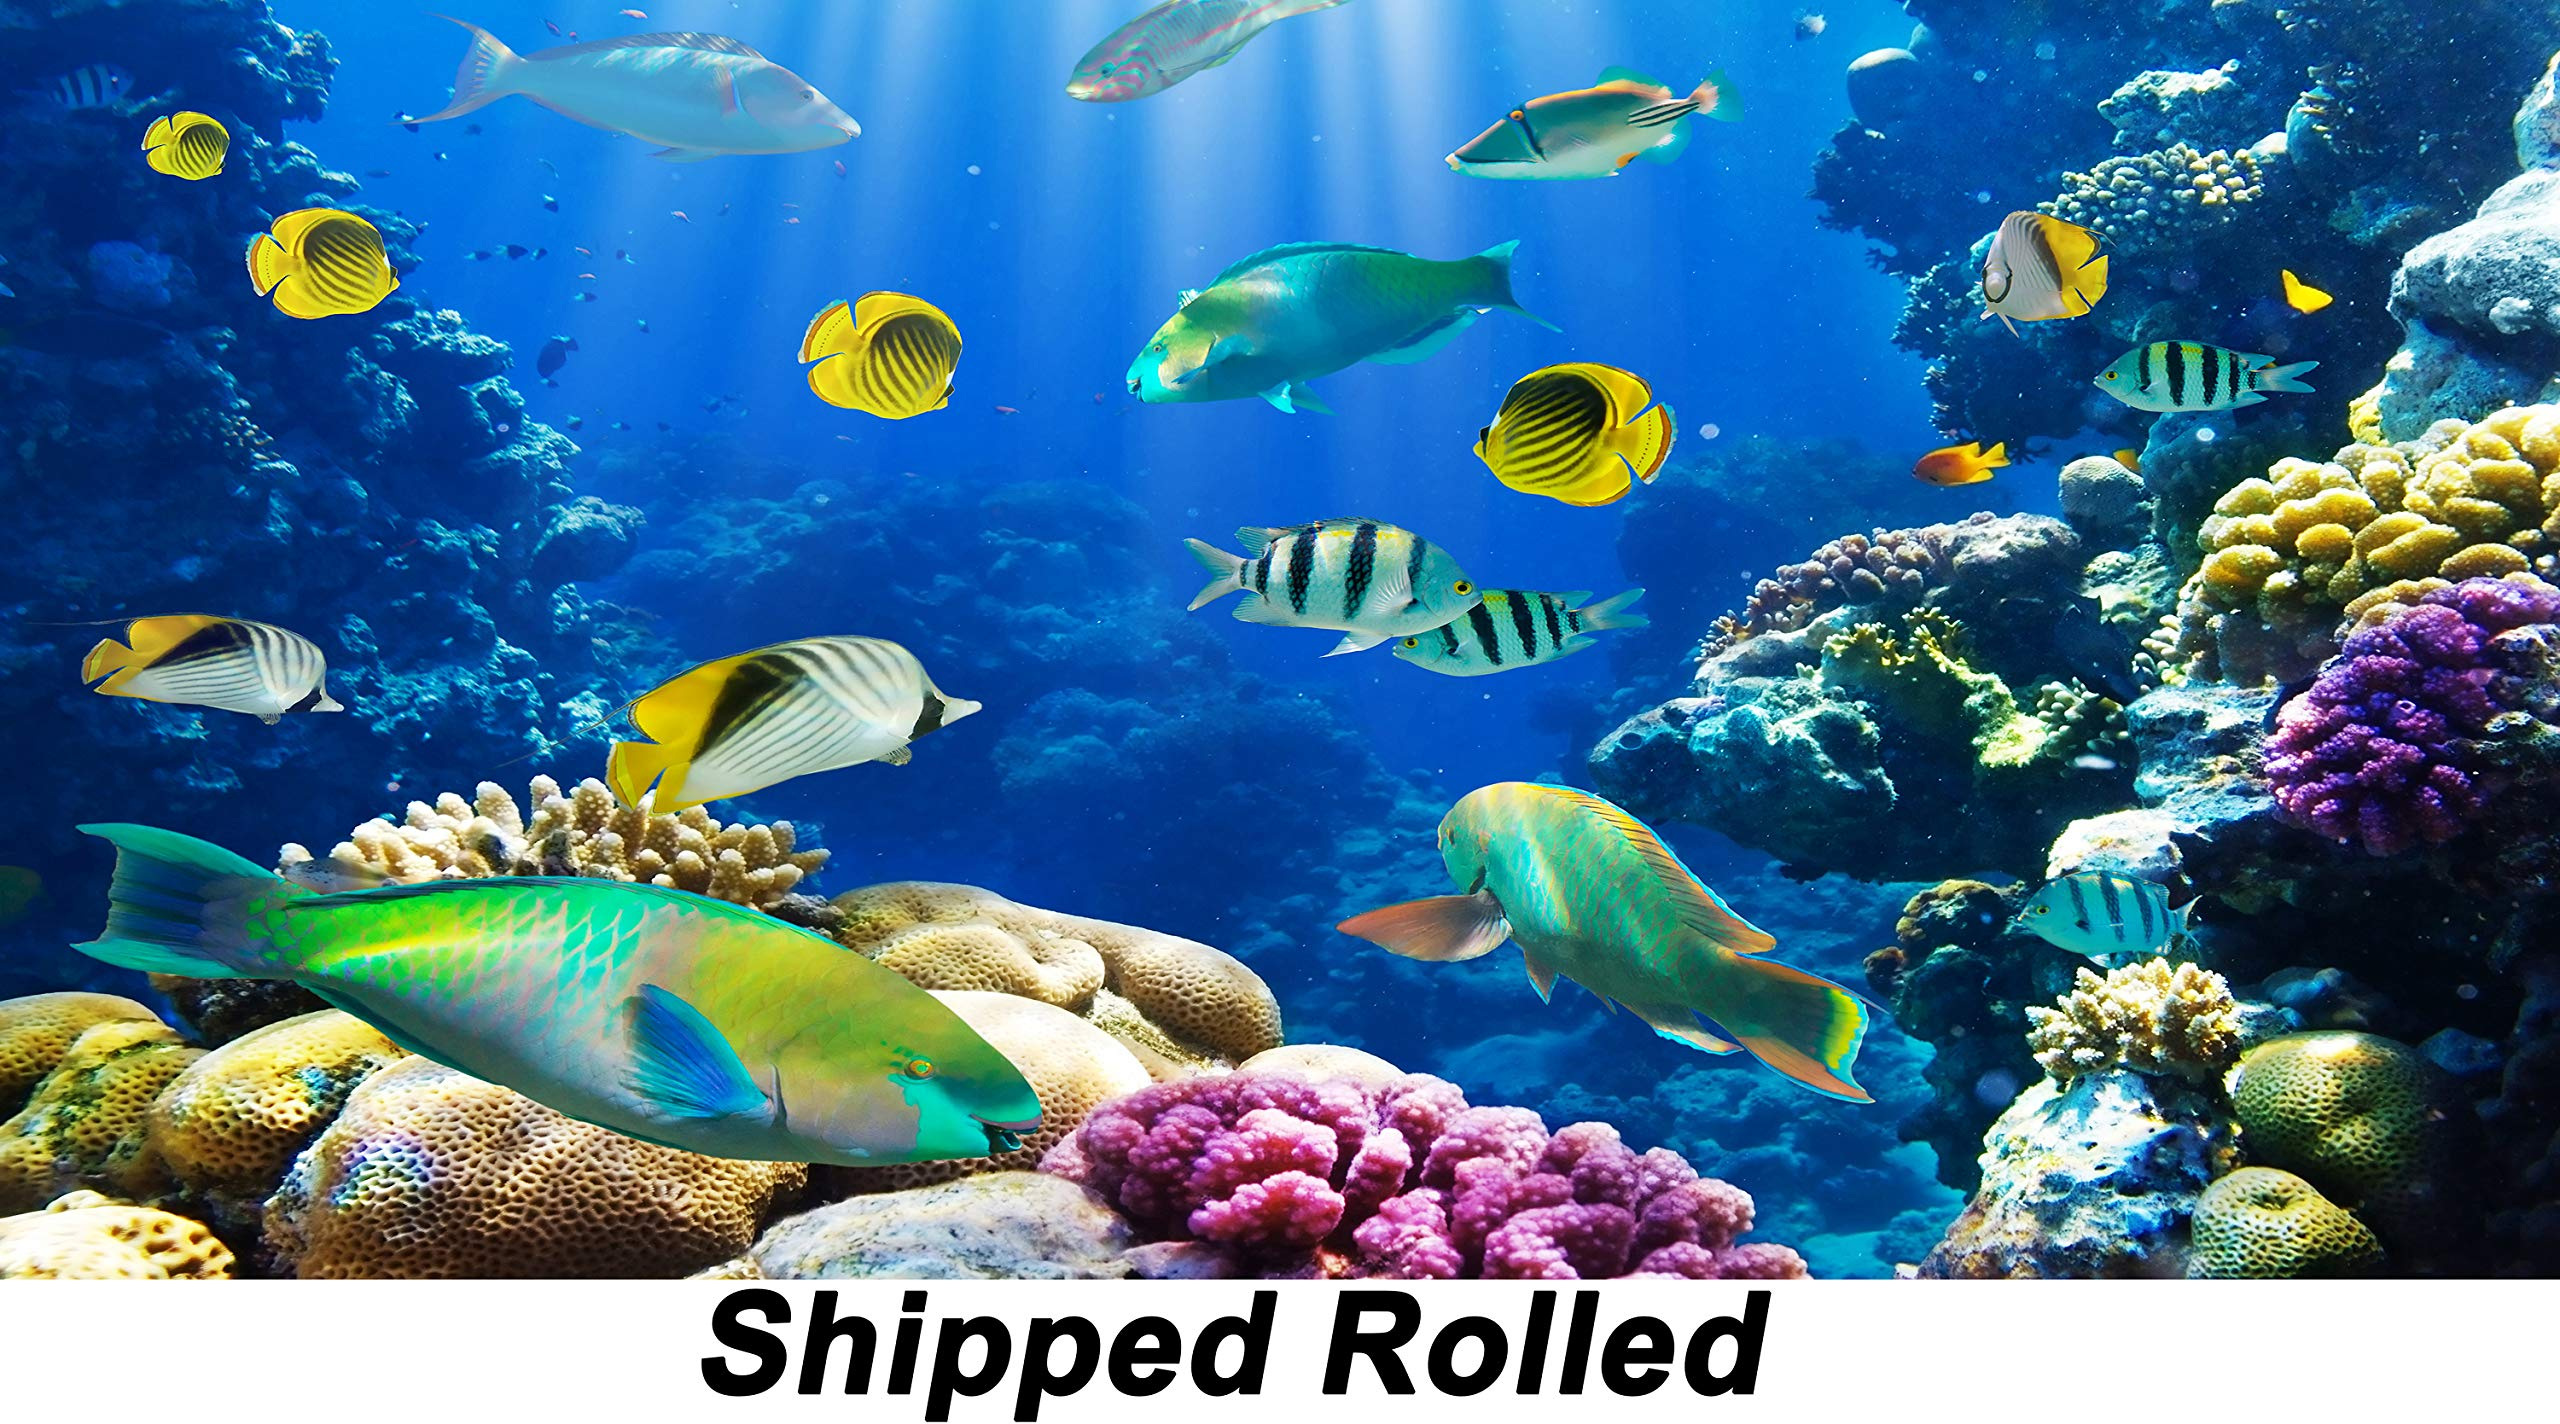 Submarine World Backdrop Chic Seabed Underwater World Marine Scene Fishes Blue sea Water with Sunshine and Stones Rocks Bottom Printed Fabric Photography Background (F0516, 16' Wide by 8' Tall)